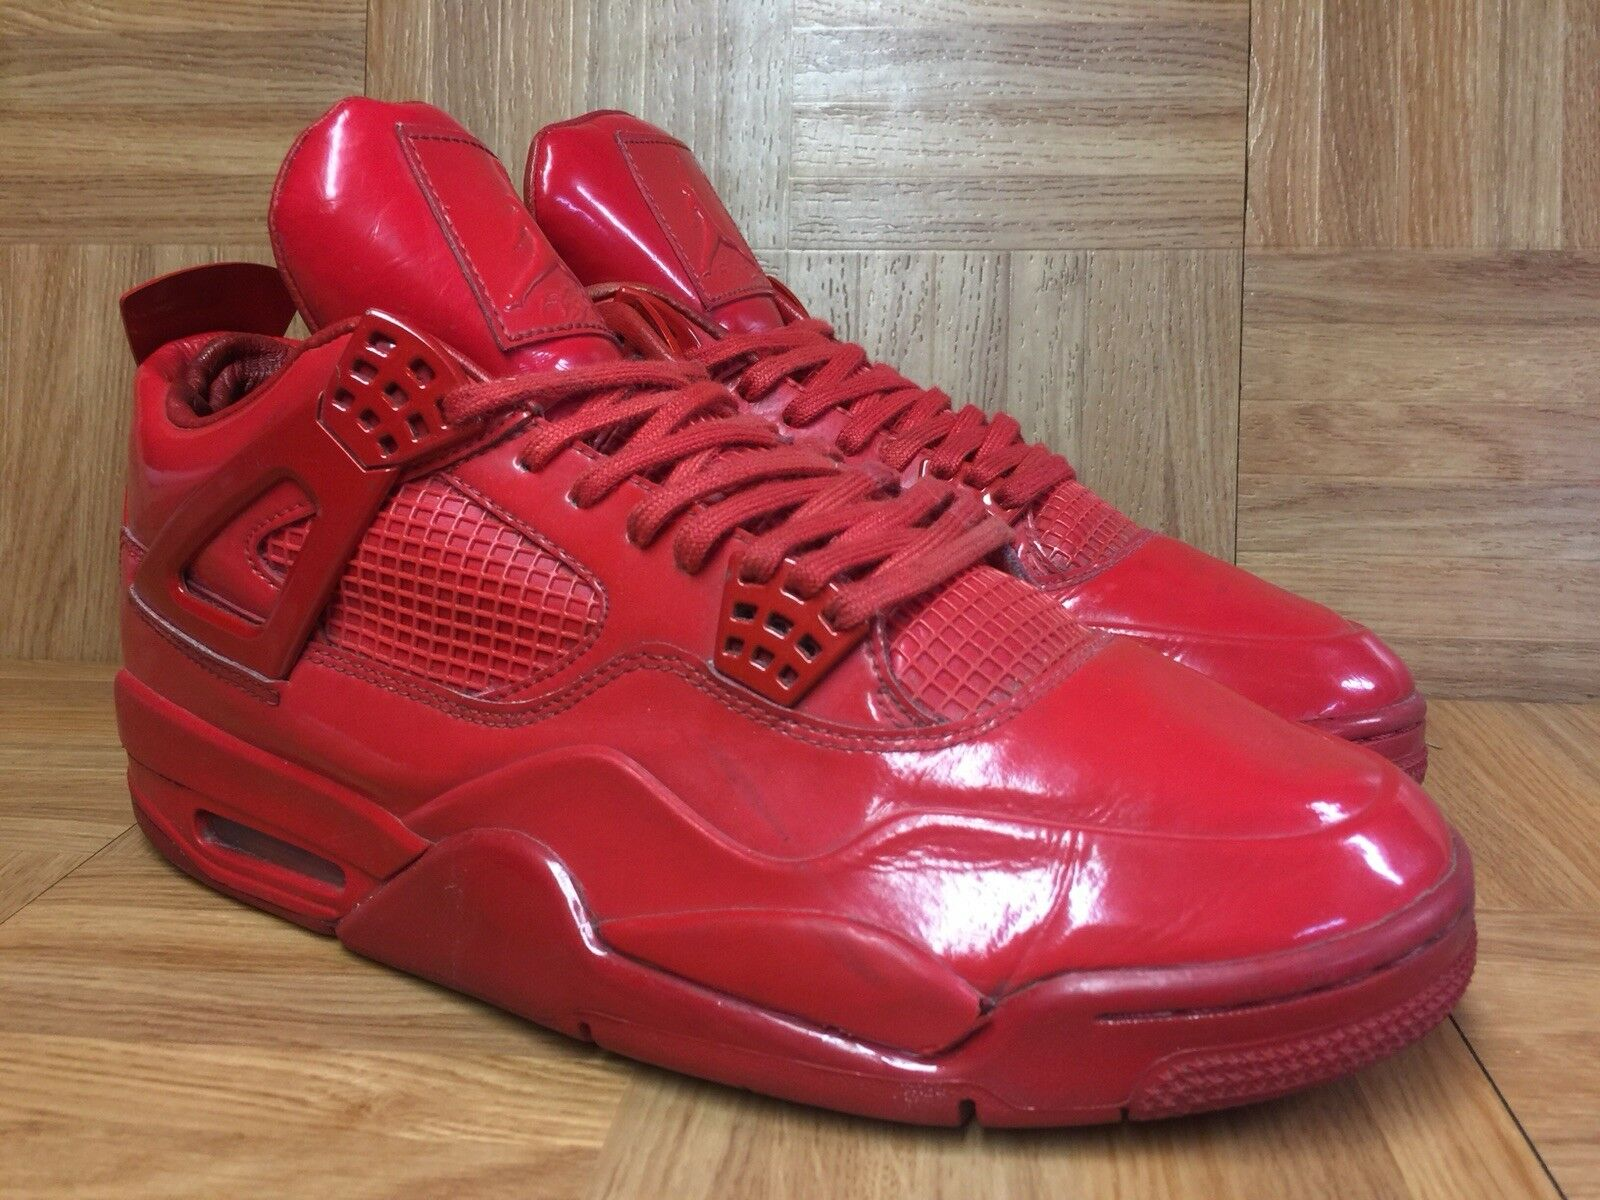 854ca7bf6b0 Vintage Nike Air Jordan 4 IV 11LAB4 University Red Patent LE Sz 12  719864-600 ncrllw4372-Athletic Shoes